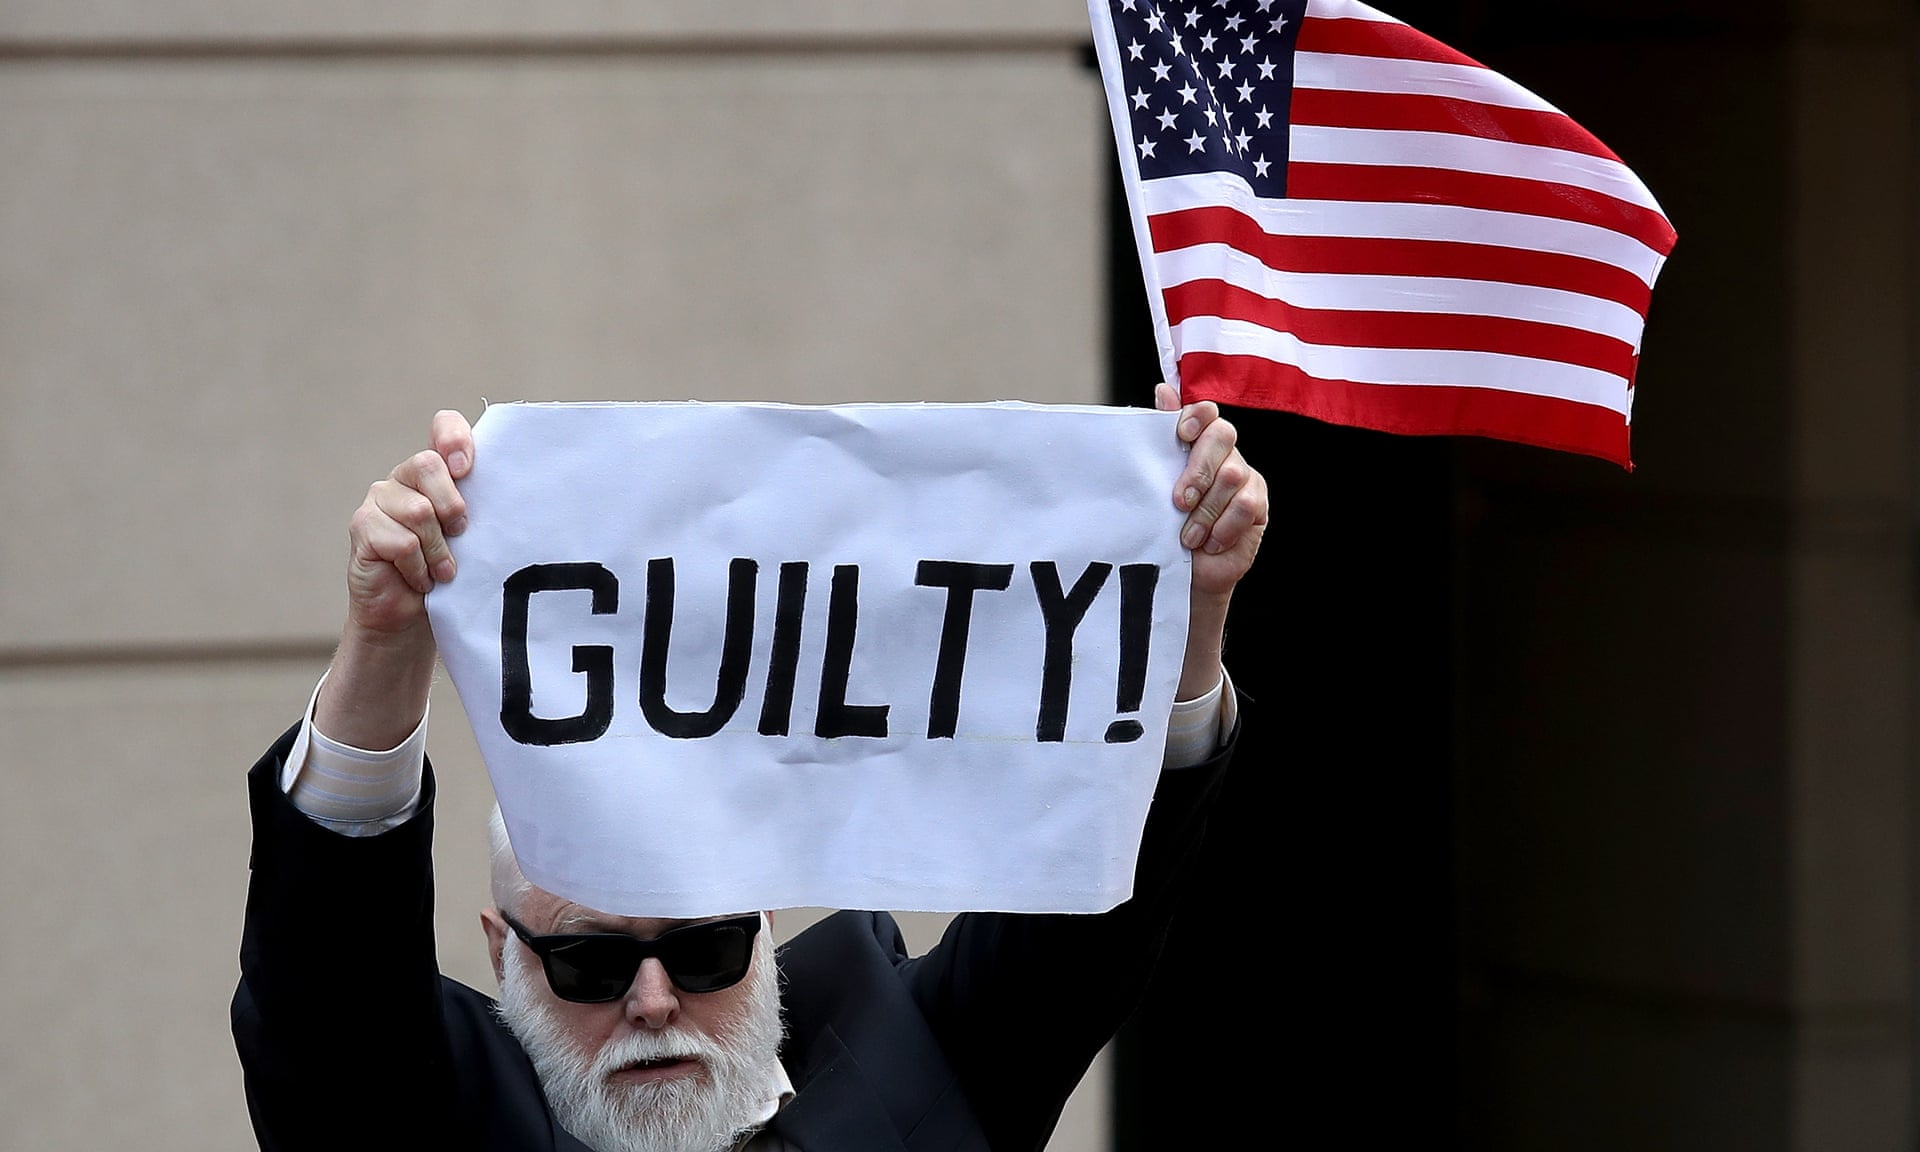 A lone protester holds up a sign and American flag outside the courthouse in Alexandria, Virginia, after Paul Manafort was found guilty on eight counts of fraud. — Photograph: Win McNamee/Getty Images.